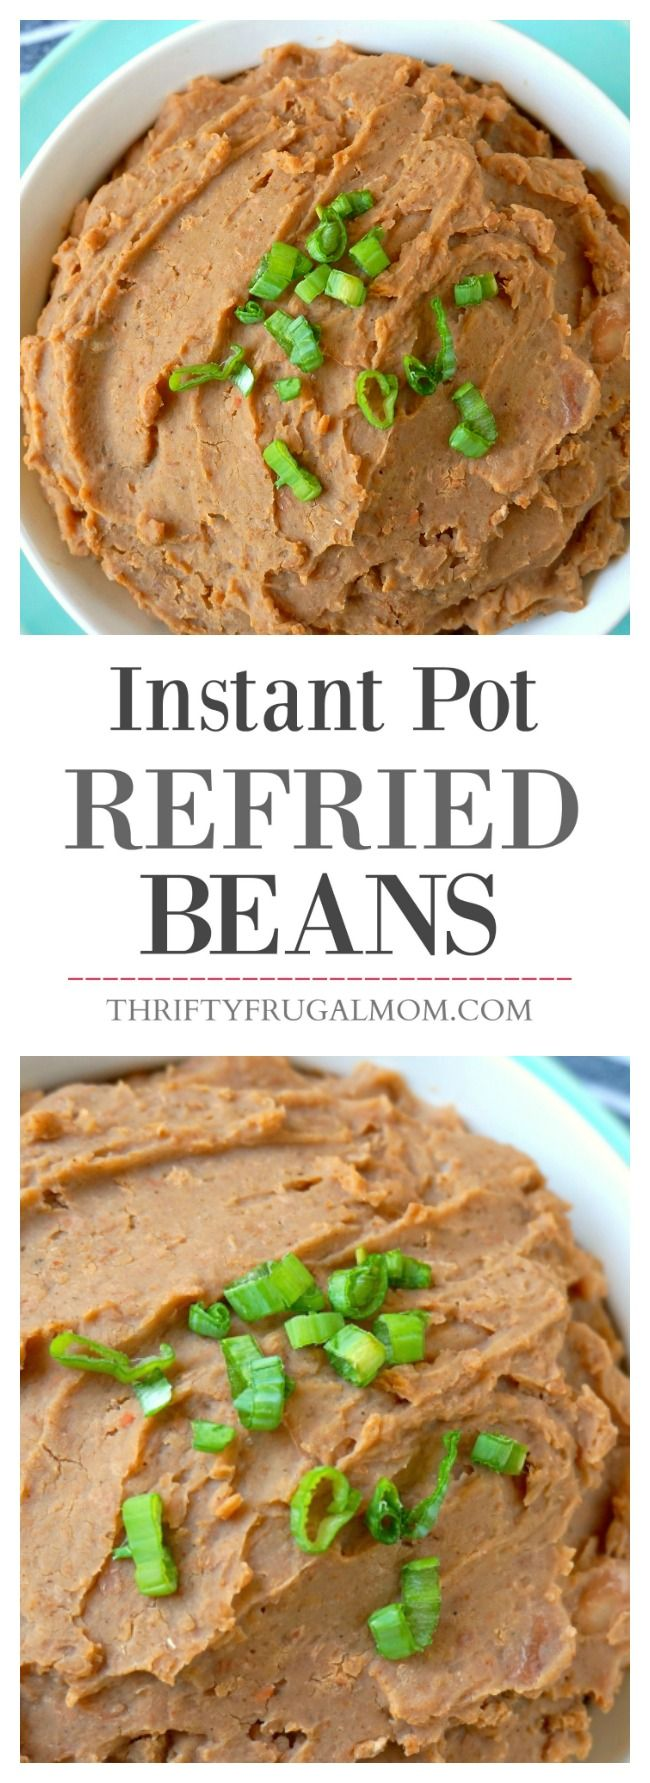 Learn how to easily make homemade refried beans in your Instant Pot! They take just 30 minutes to cook and are delicious and cheap!  Also includes instructions for making refried beans in your Crockpot as well.